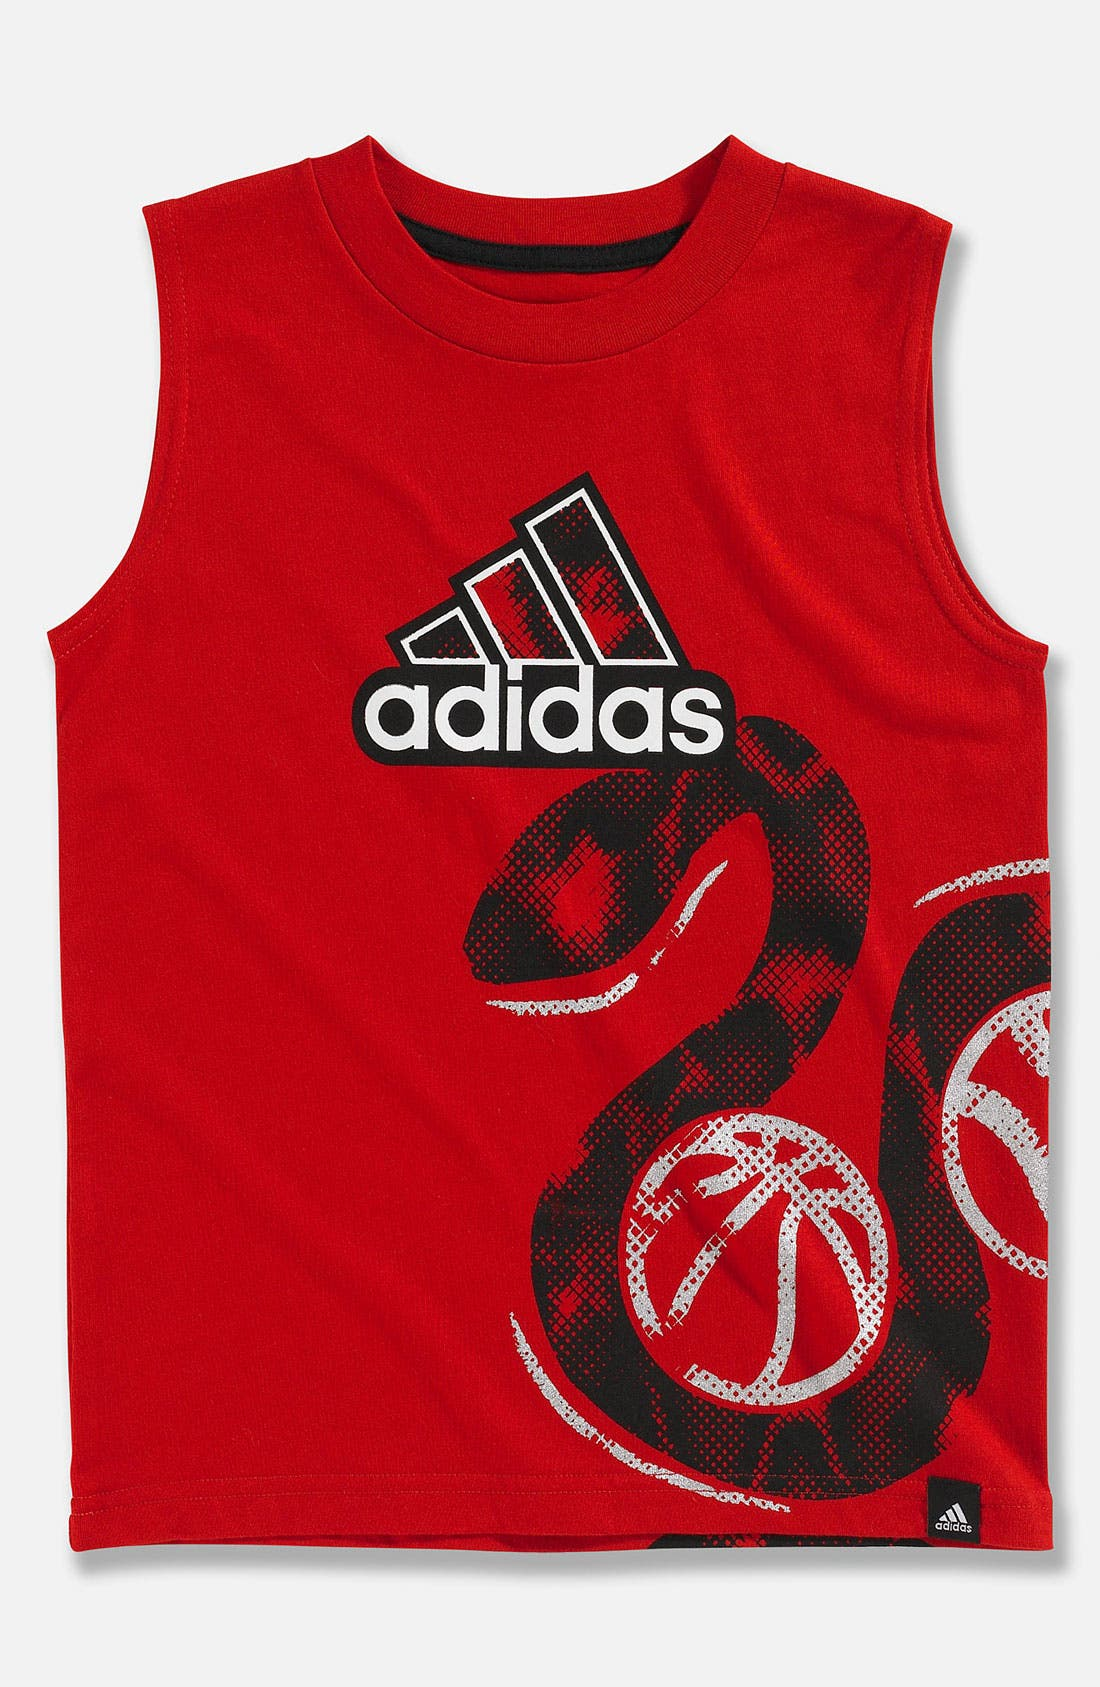 Main Image - adidas 'Big Baller' Tank Top (Little Boys)